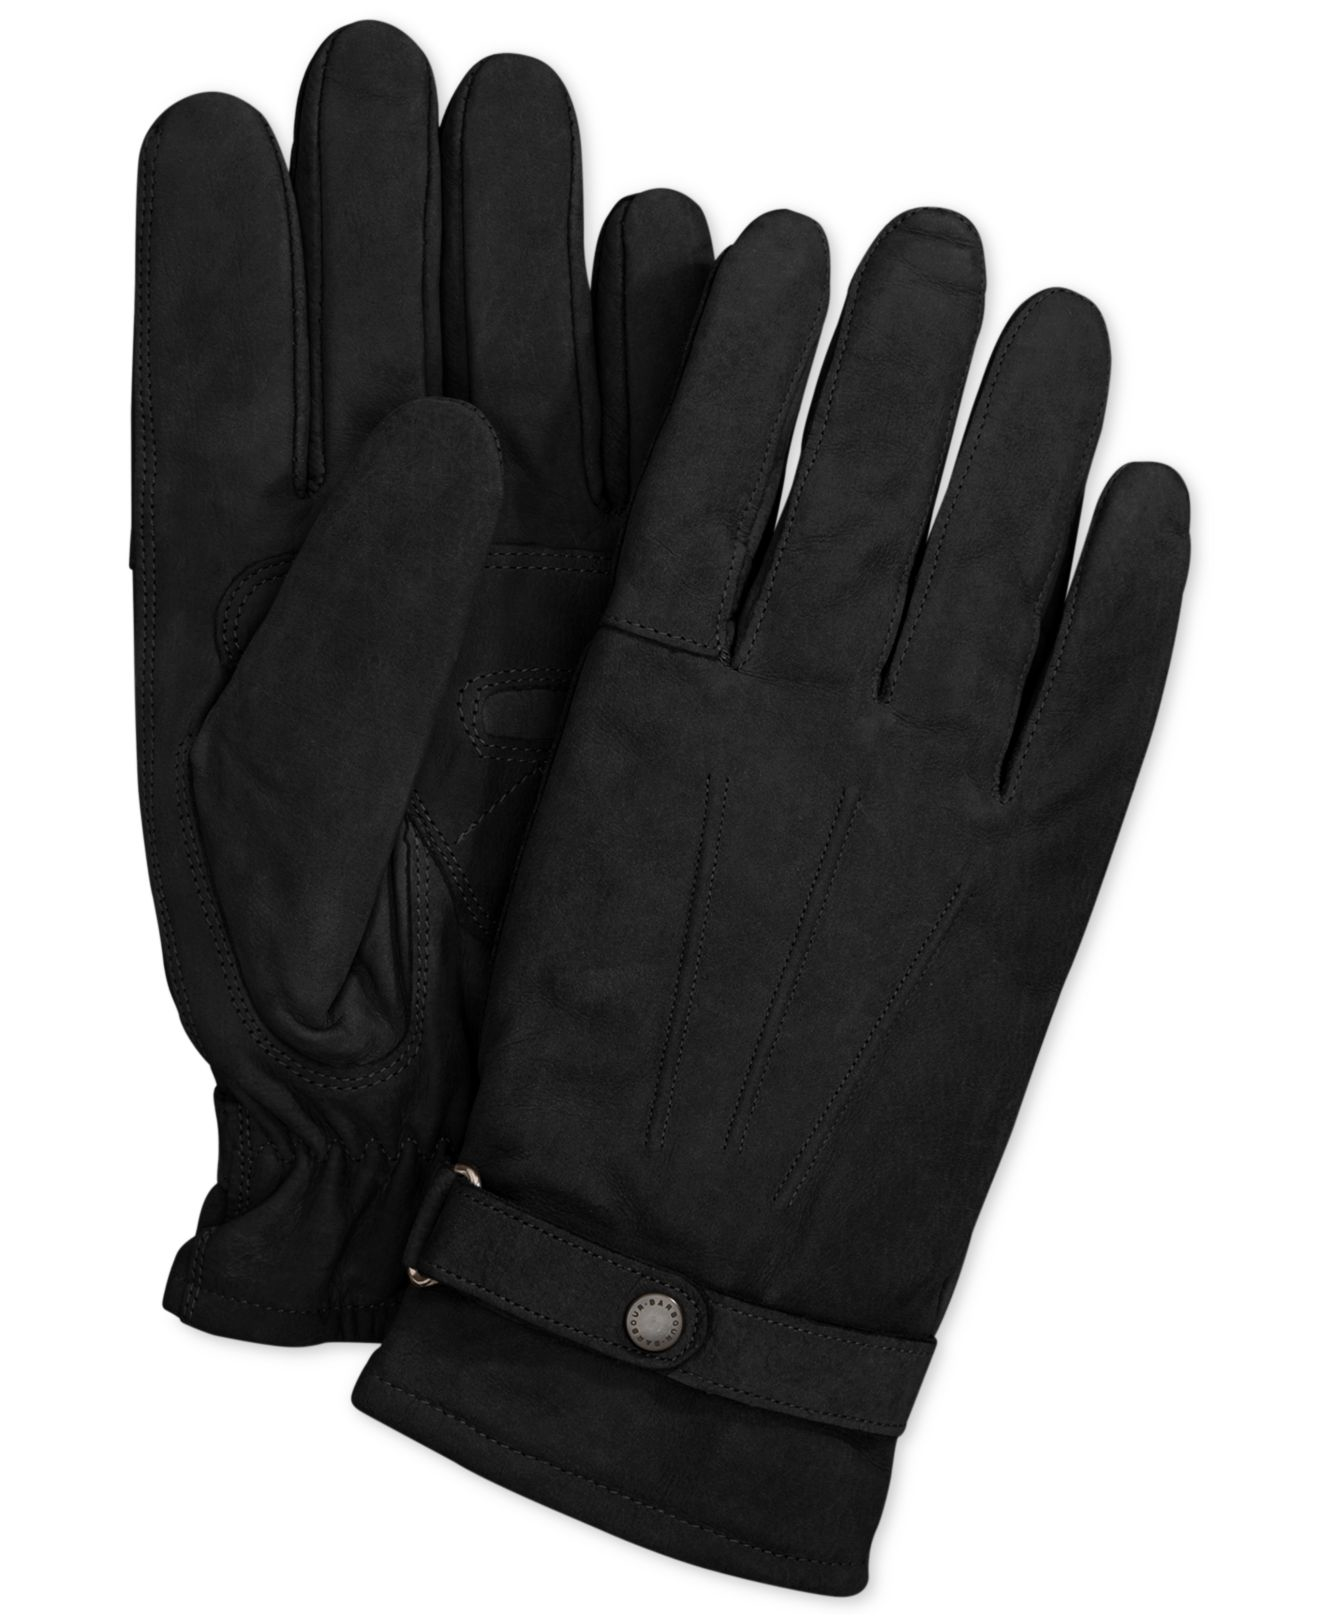 Barbour black leather utility gloves -  Utility Gloves Gloves Barbour Mens Leather Thinsulate Gloves Gloves